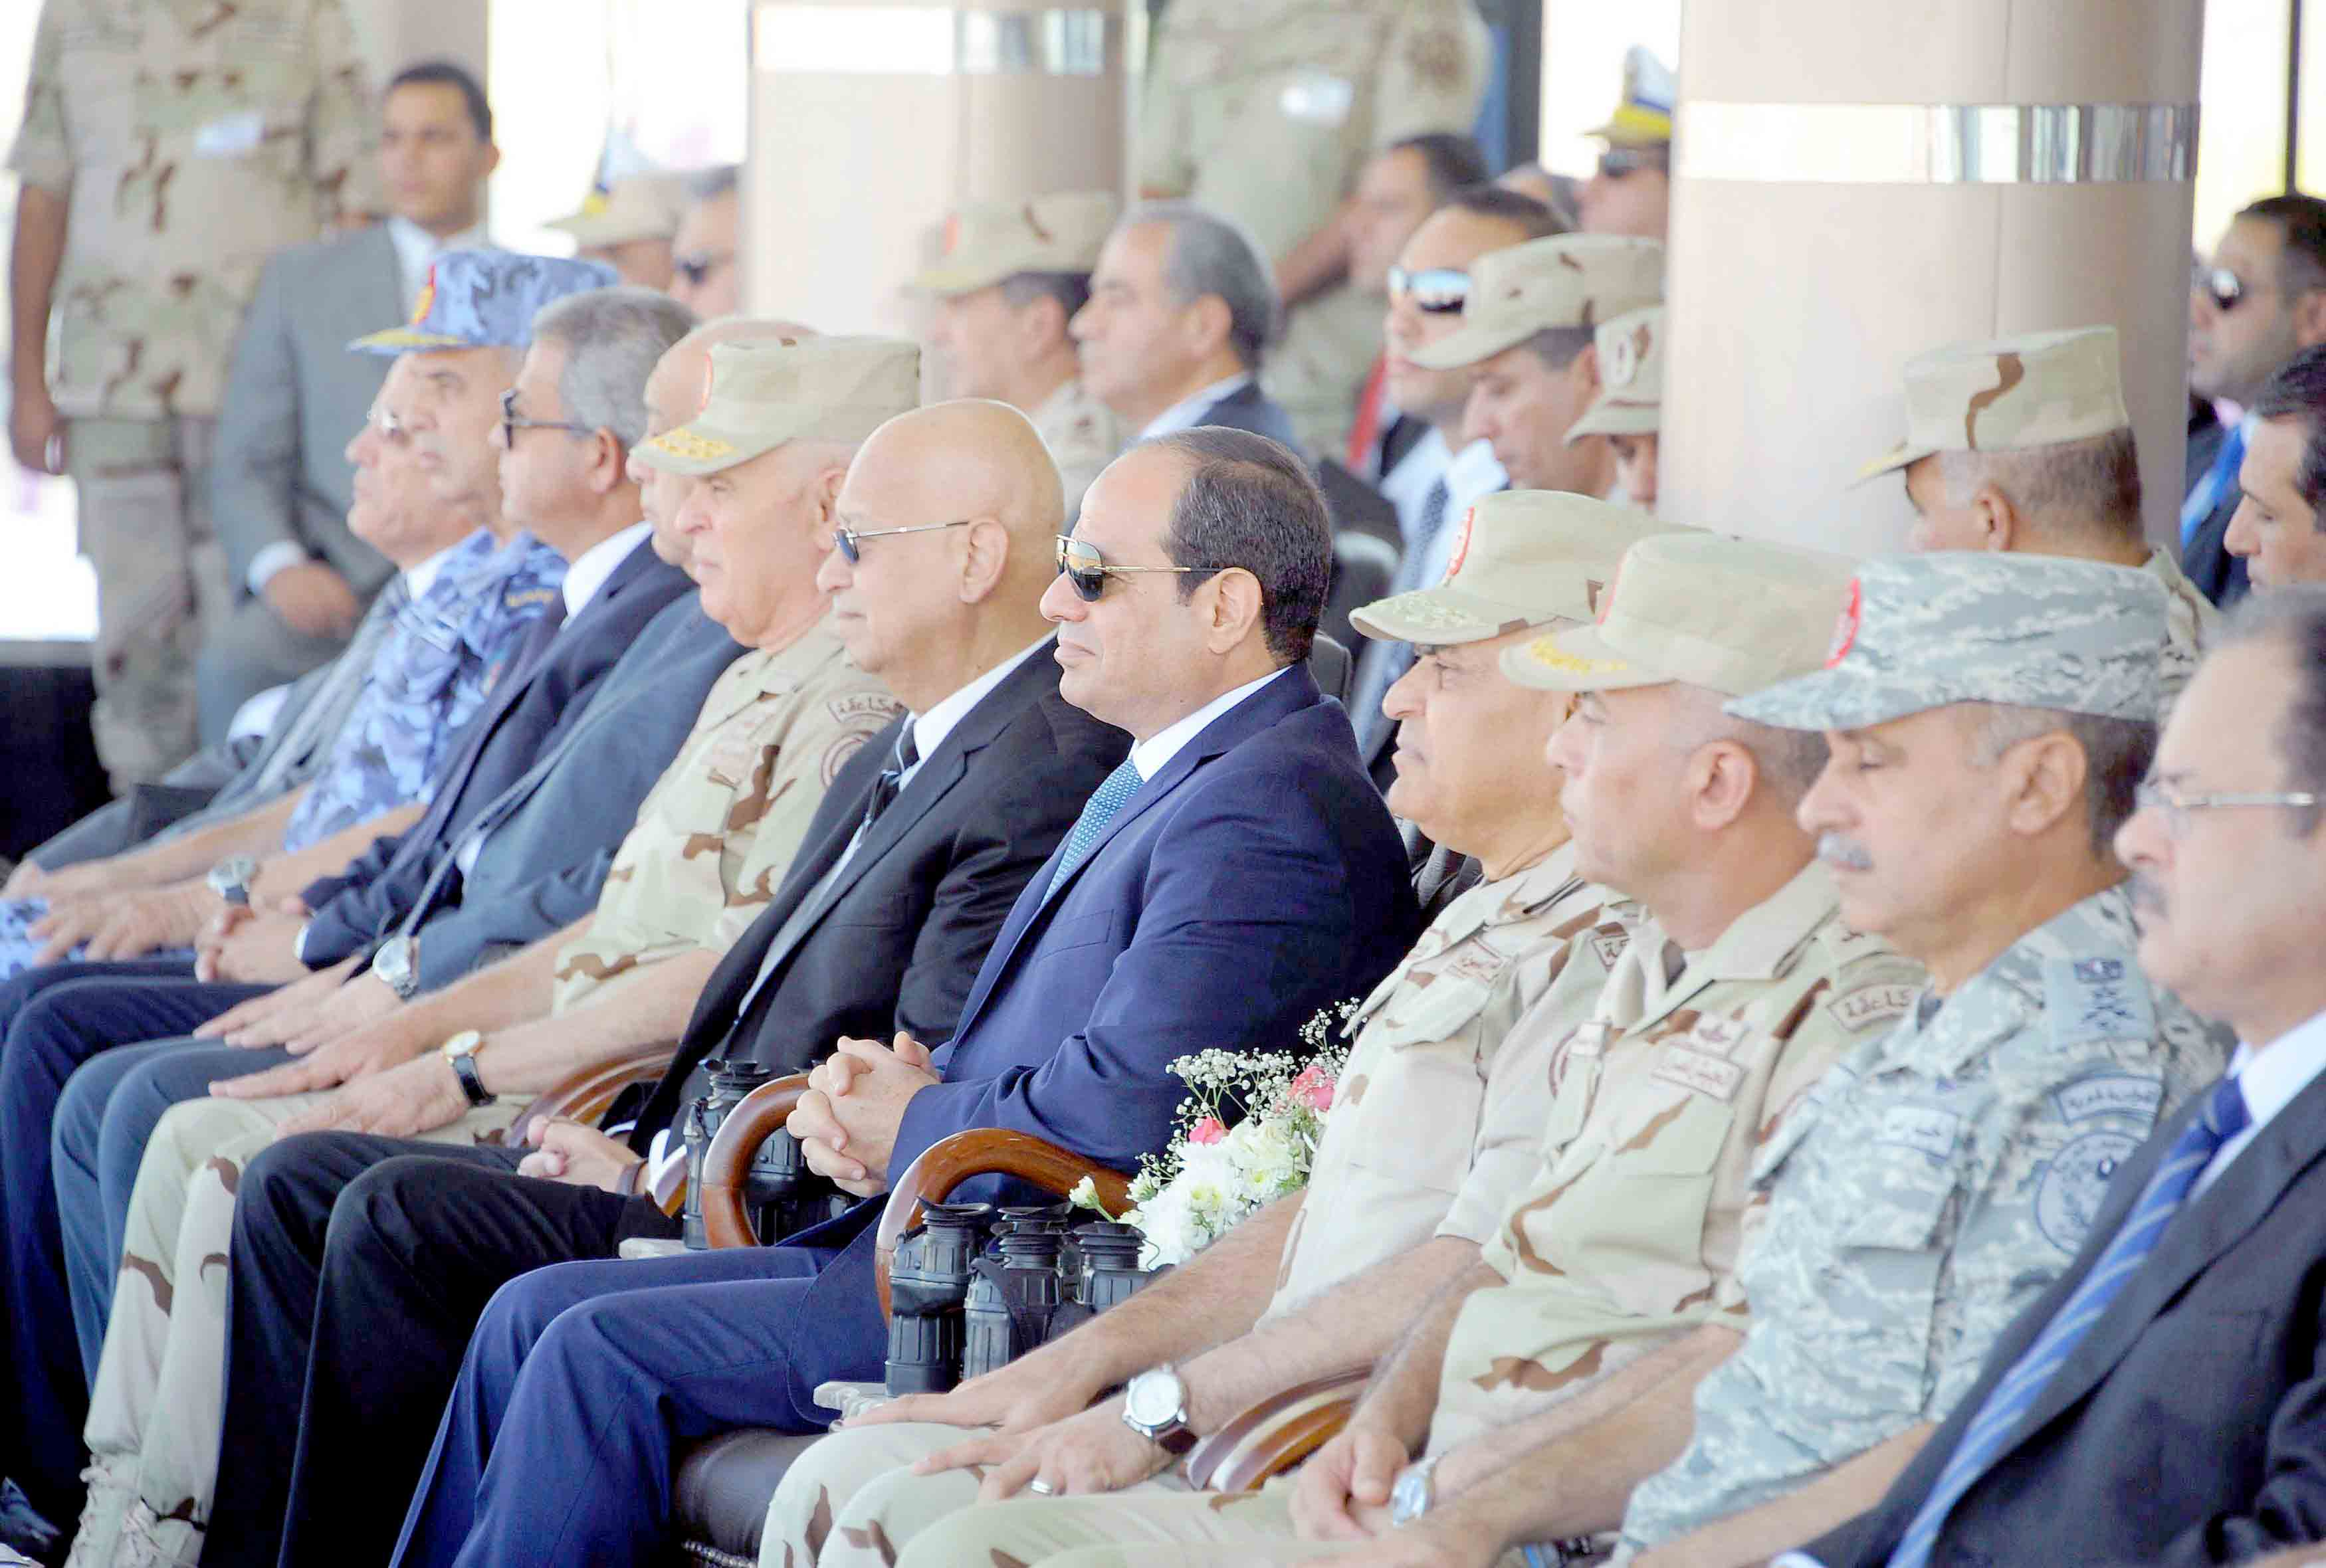 Egyptian President Abdel Fattah al-Sisi (C) attends a presentation of combat efficiency of the armed forces in Suez, Egypt. (Reuters)